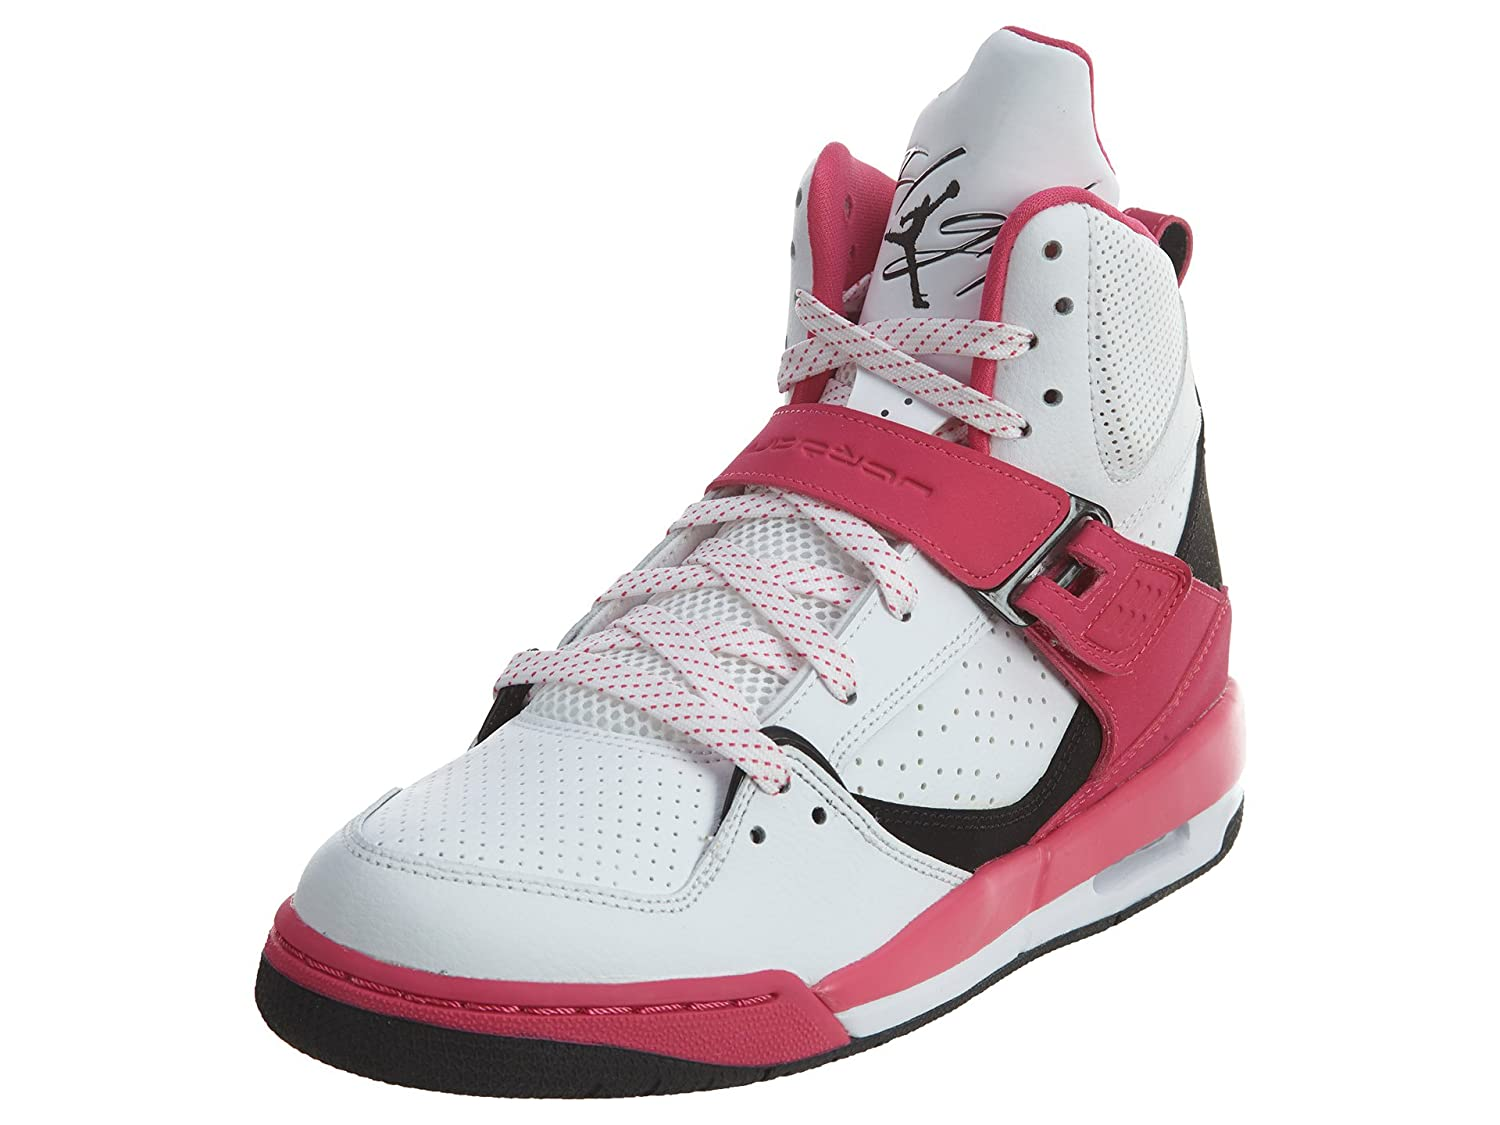 Amazon.com | Jordan Flight 45 High GG White/Black-Vivid Pink (9.5 M US Big Kid) | Golf